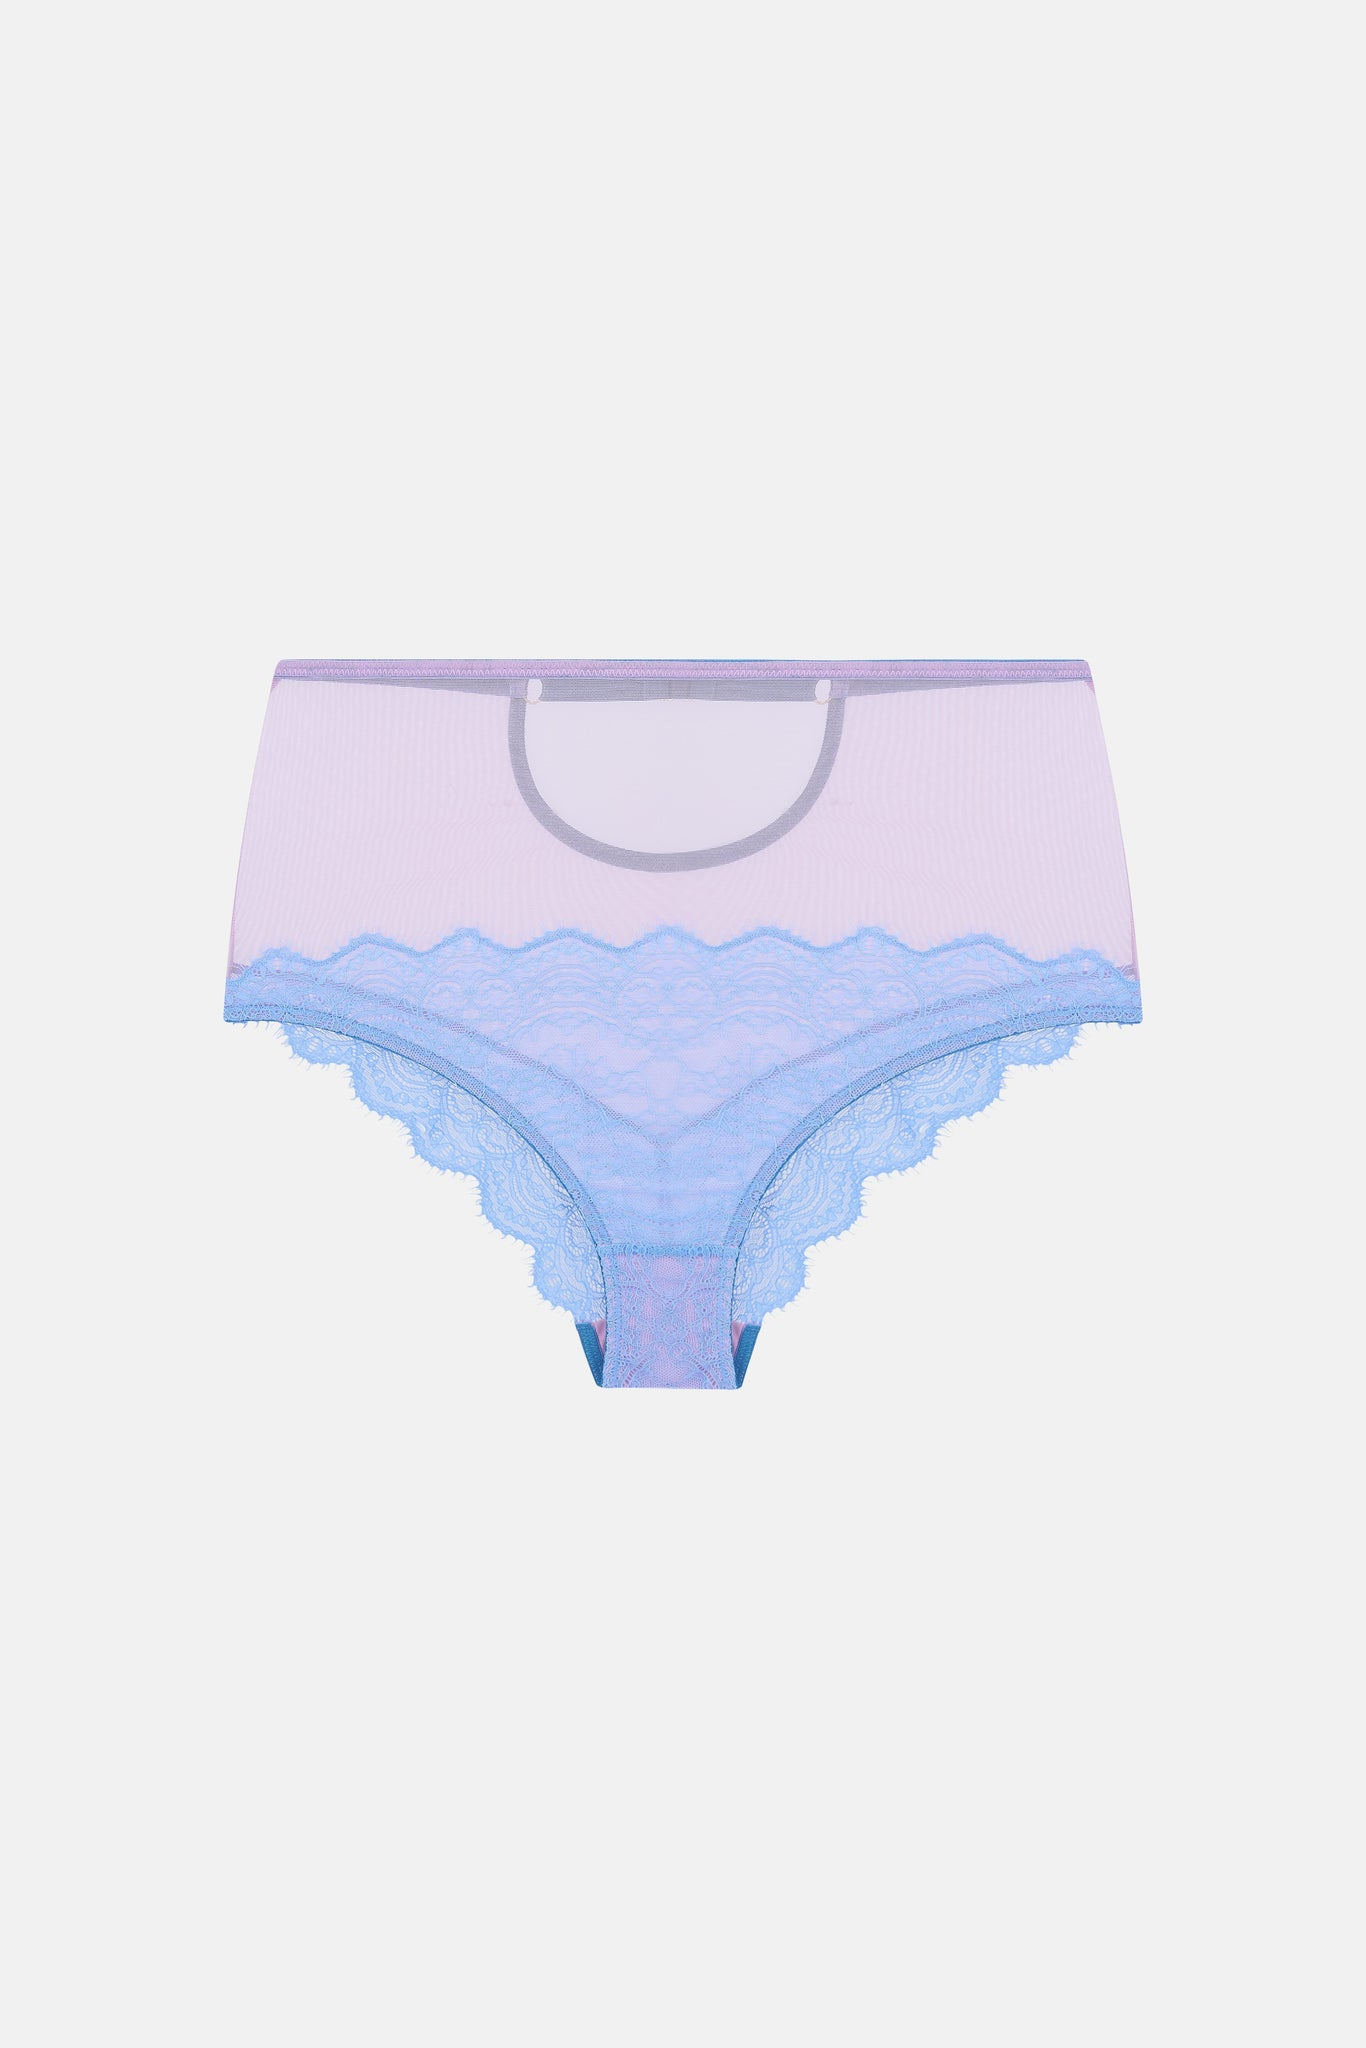 Jessica High Waist Knicker - Dora Larsen | Colourful Lingerie